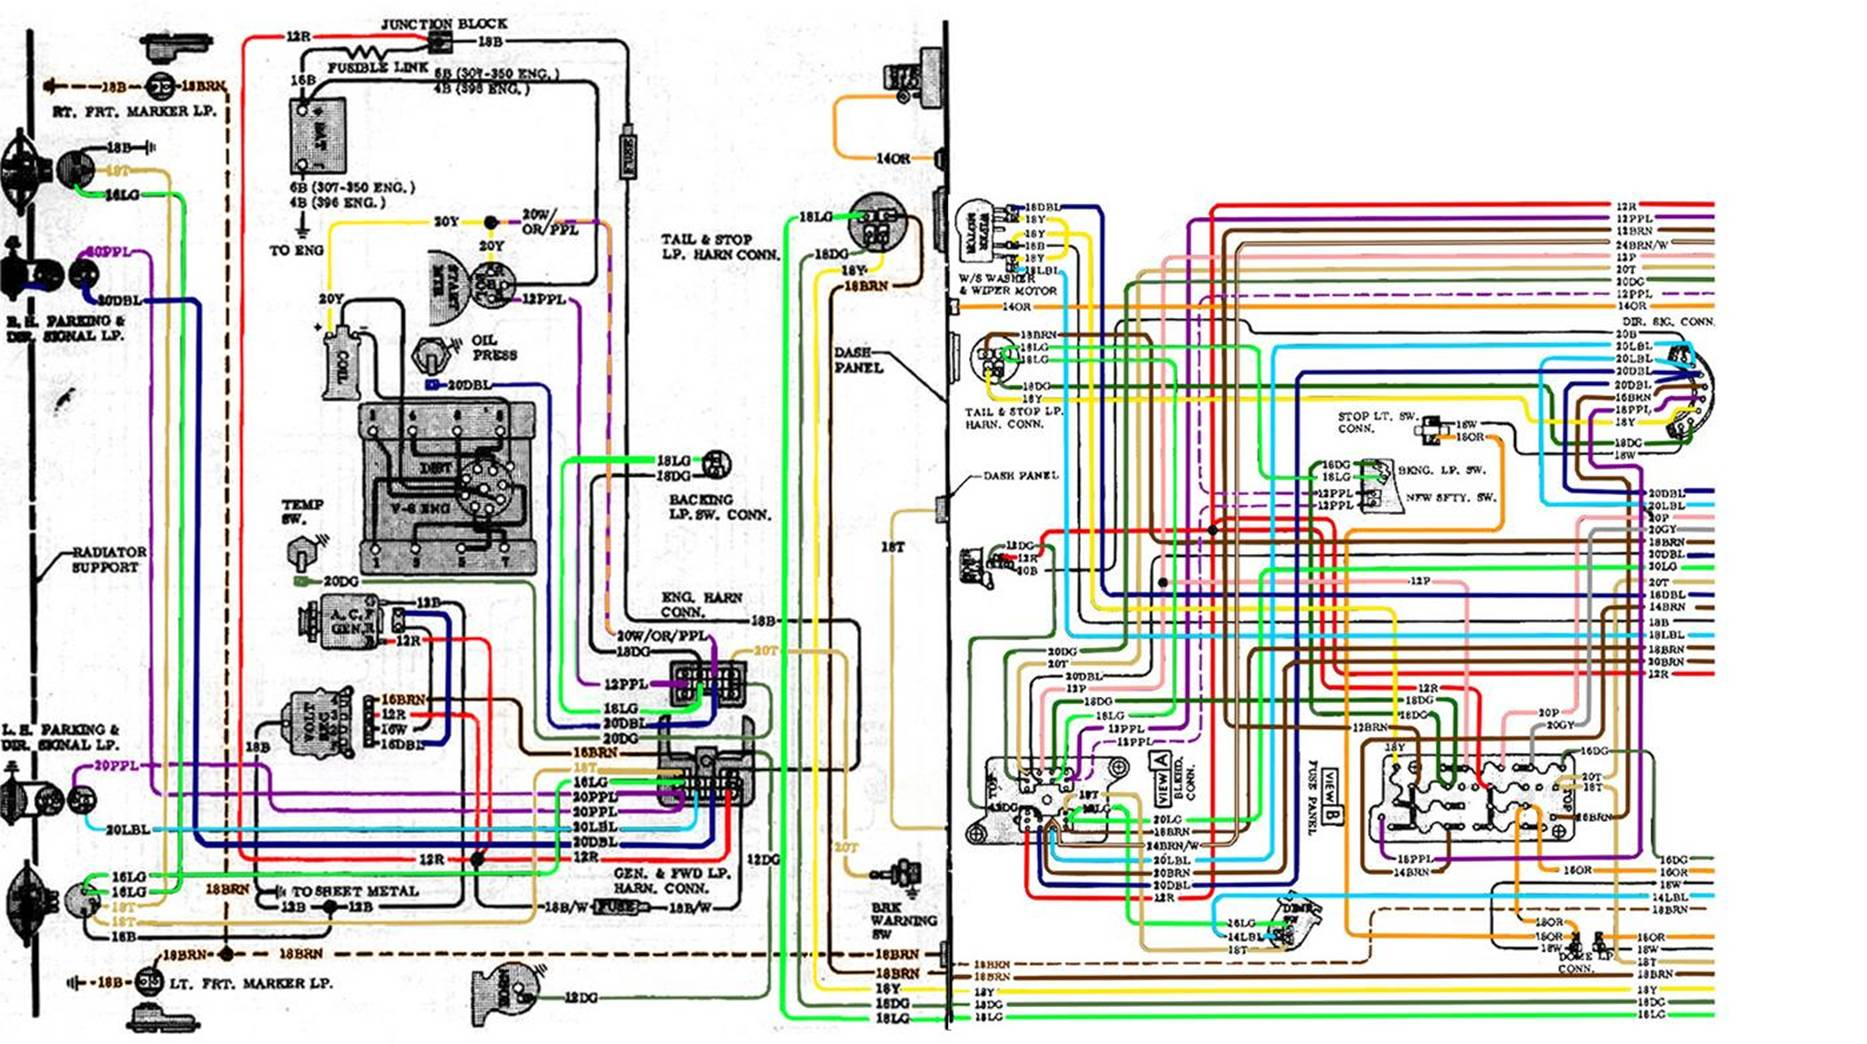 1970 Chevy C10 Wiring Diagram Archive Of Automotive Ford Starter 67 72 Rh Outintheshop Com Chevrolet Truck